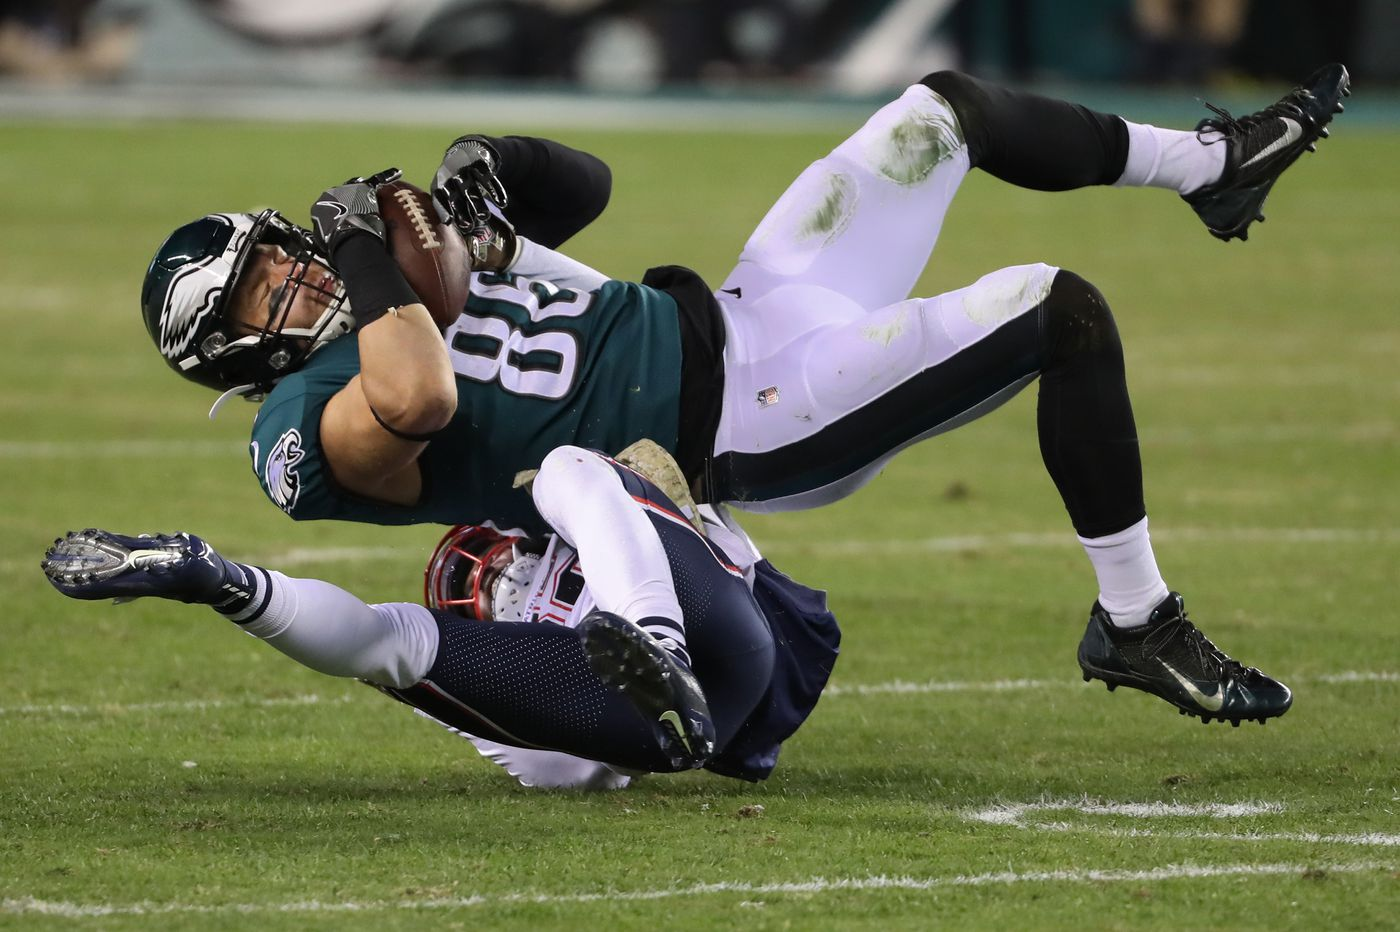 Eagles tight end Zach Ertz is questionable for Sunday's Dolphins game